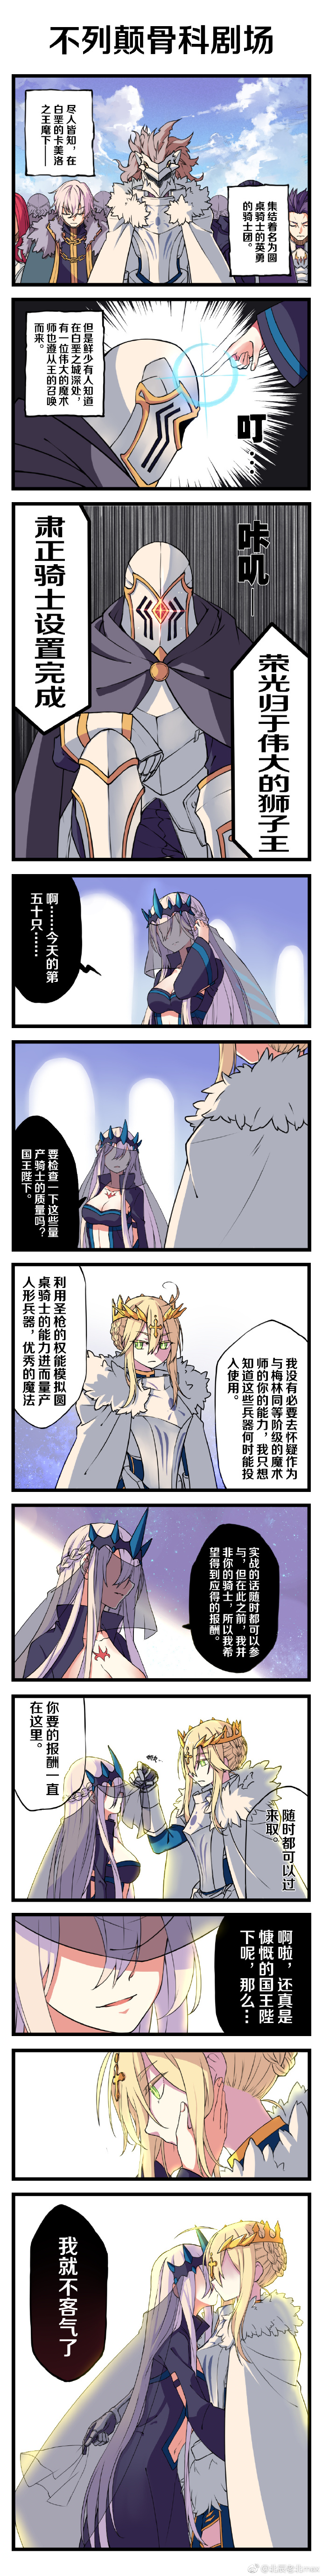 2girls absurdres agravain_(fate/grand_order) armor artoria_pendragon_(all) artoria_pendragon_(lancer) blonde_hair breastplate breasts chinese cleavage closed_eyes comic crown fate/grand_order fate_(series) gauntlets gawain_(fate/extra) glowing helmet highres incest kiss ko_kita lancelot_(fate/grand_order) long_hair long_image mane morgan_le_fay_(fate) morgan_le_faye_(fate) multiple_boys multiple_girls navel pointing siblings sisters tall_image translation_request tristan_(fate/grand_order) veil weibo_username yuri